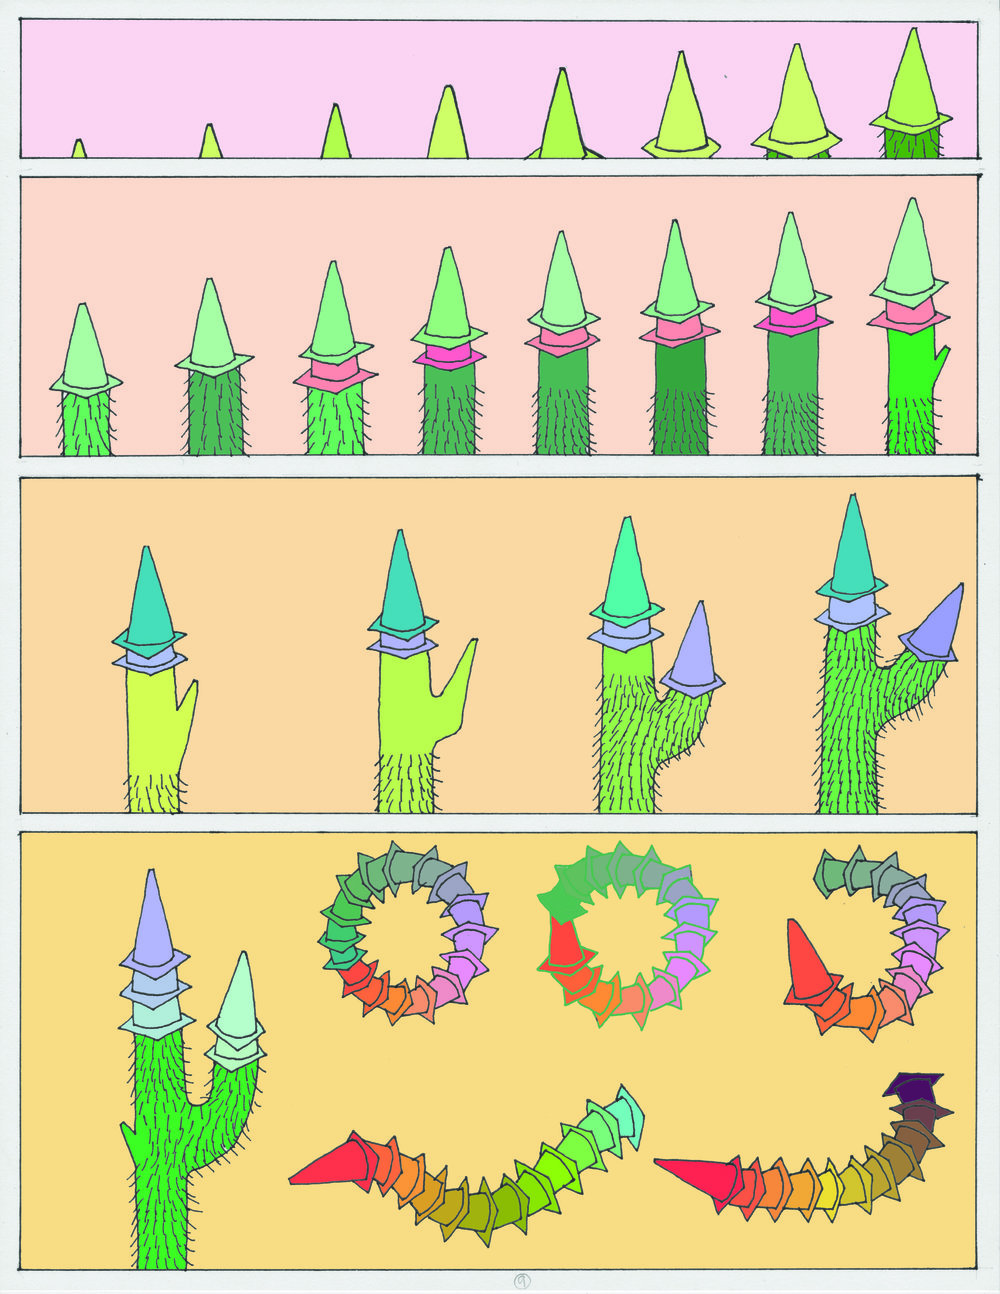 Page 9 - Coneworms Growing